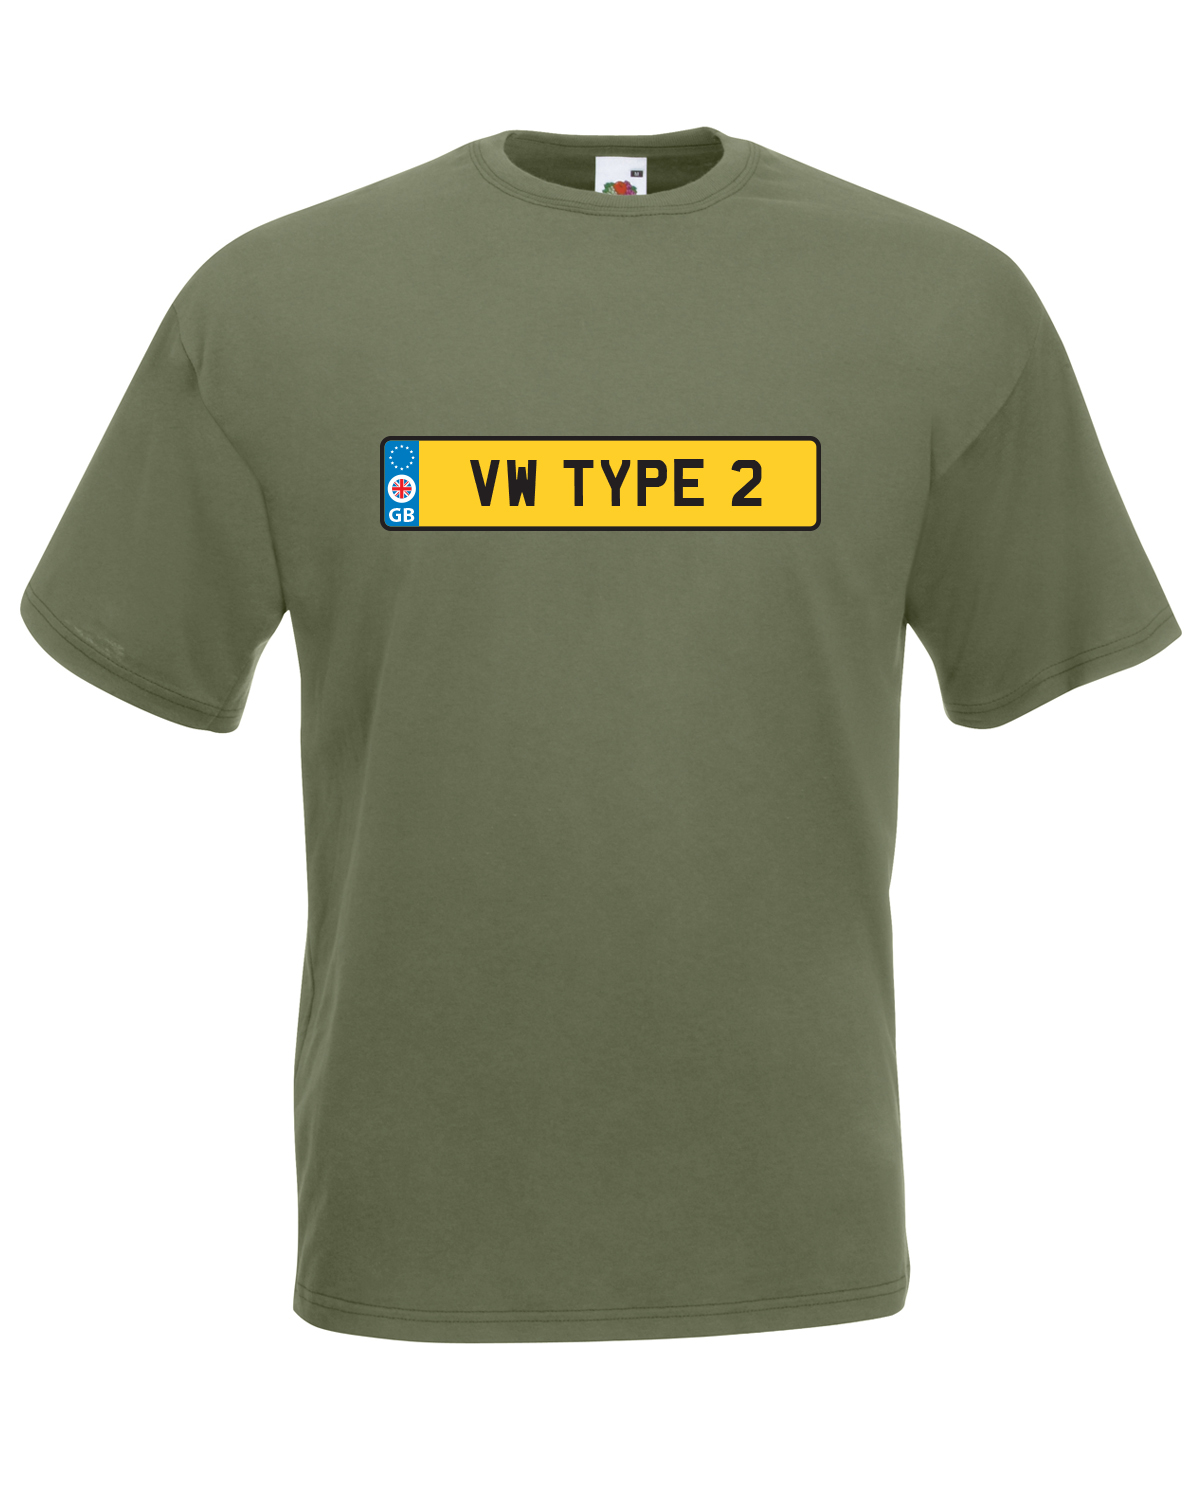 Vw type 2 number plate car graphic design quality t for Graphic design t shirts uk